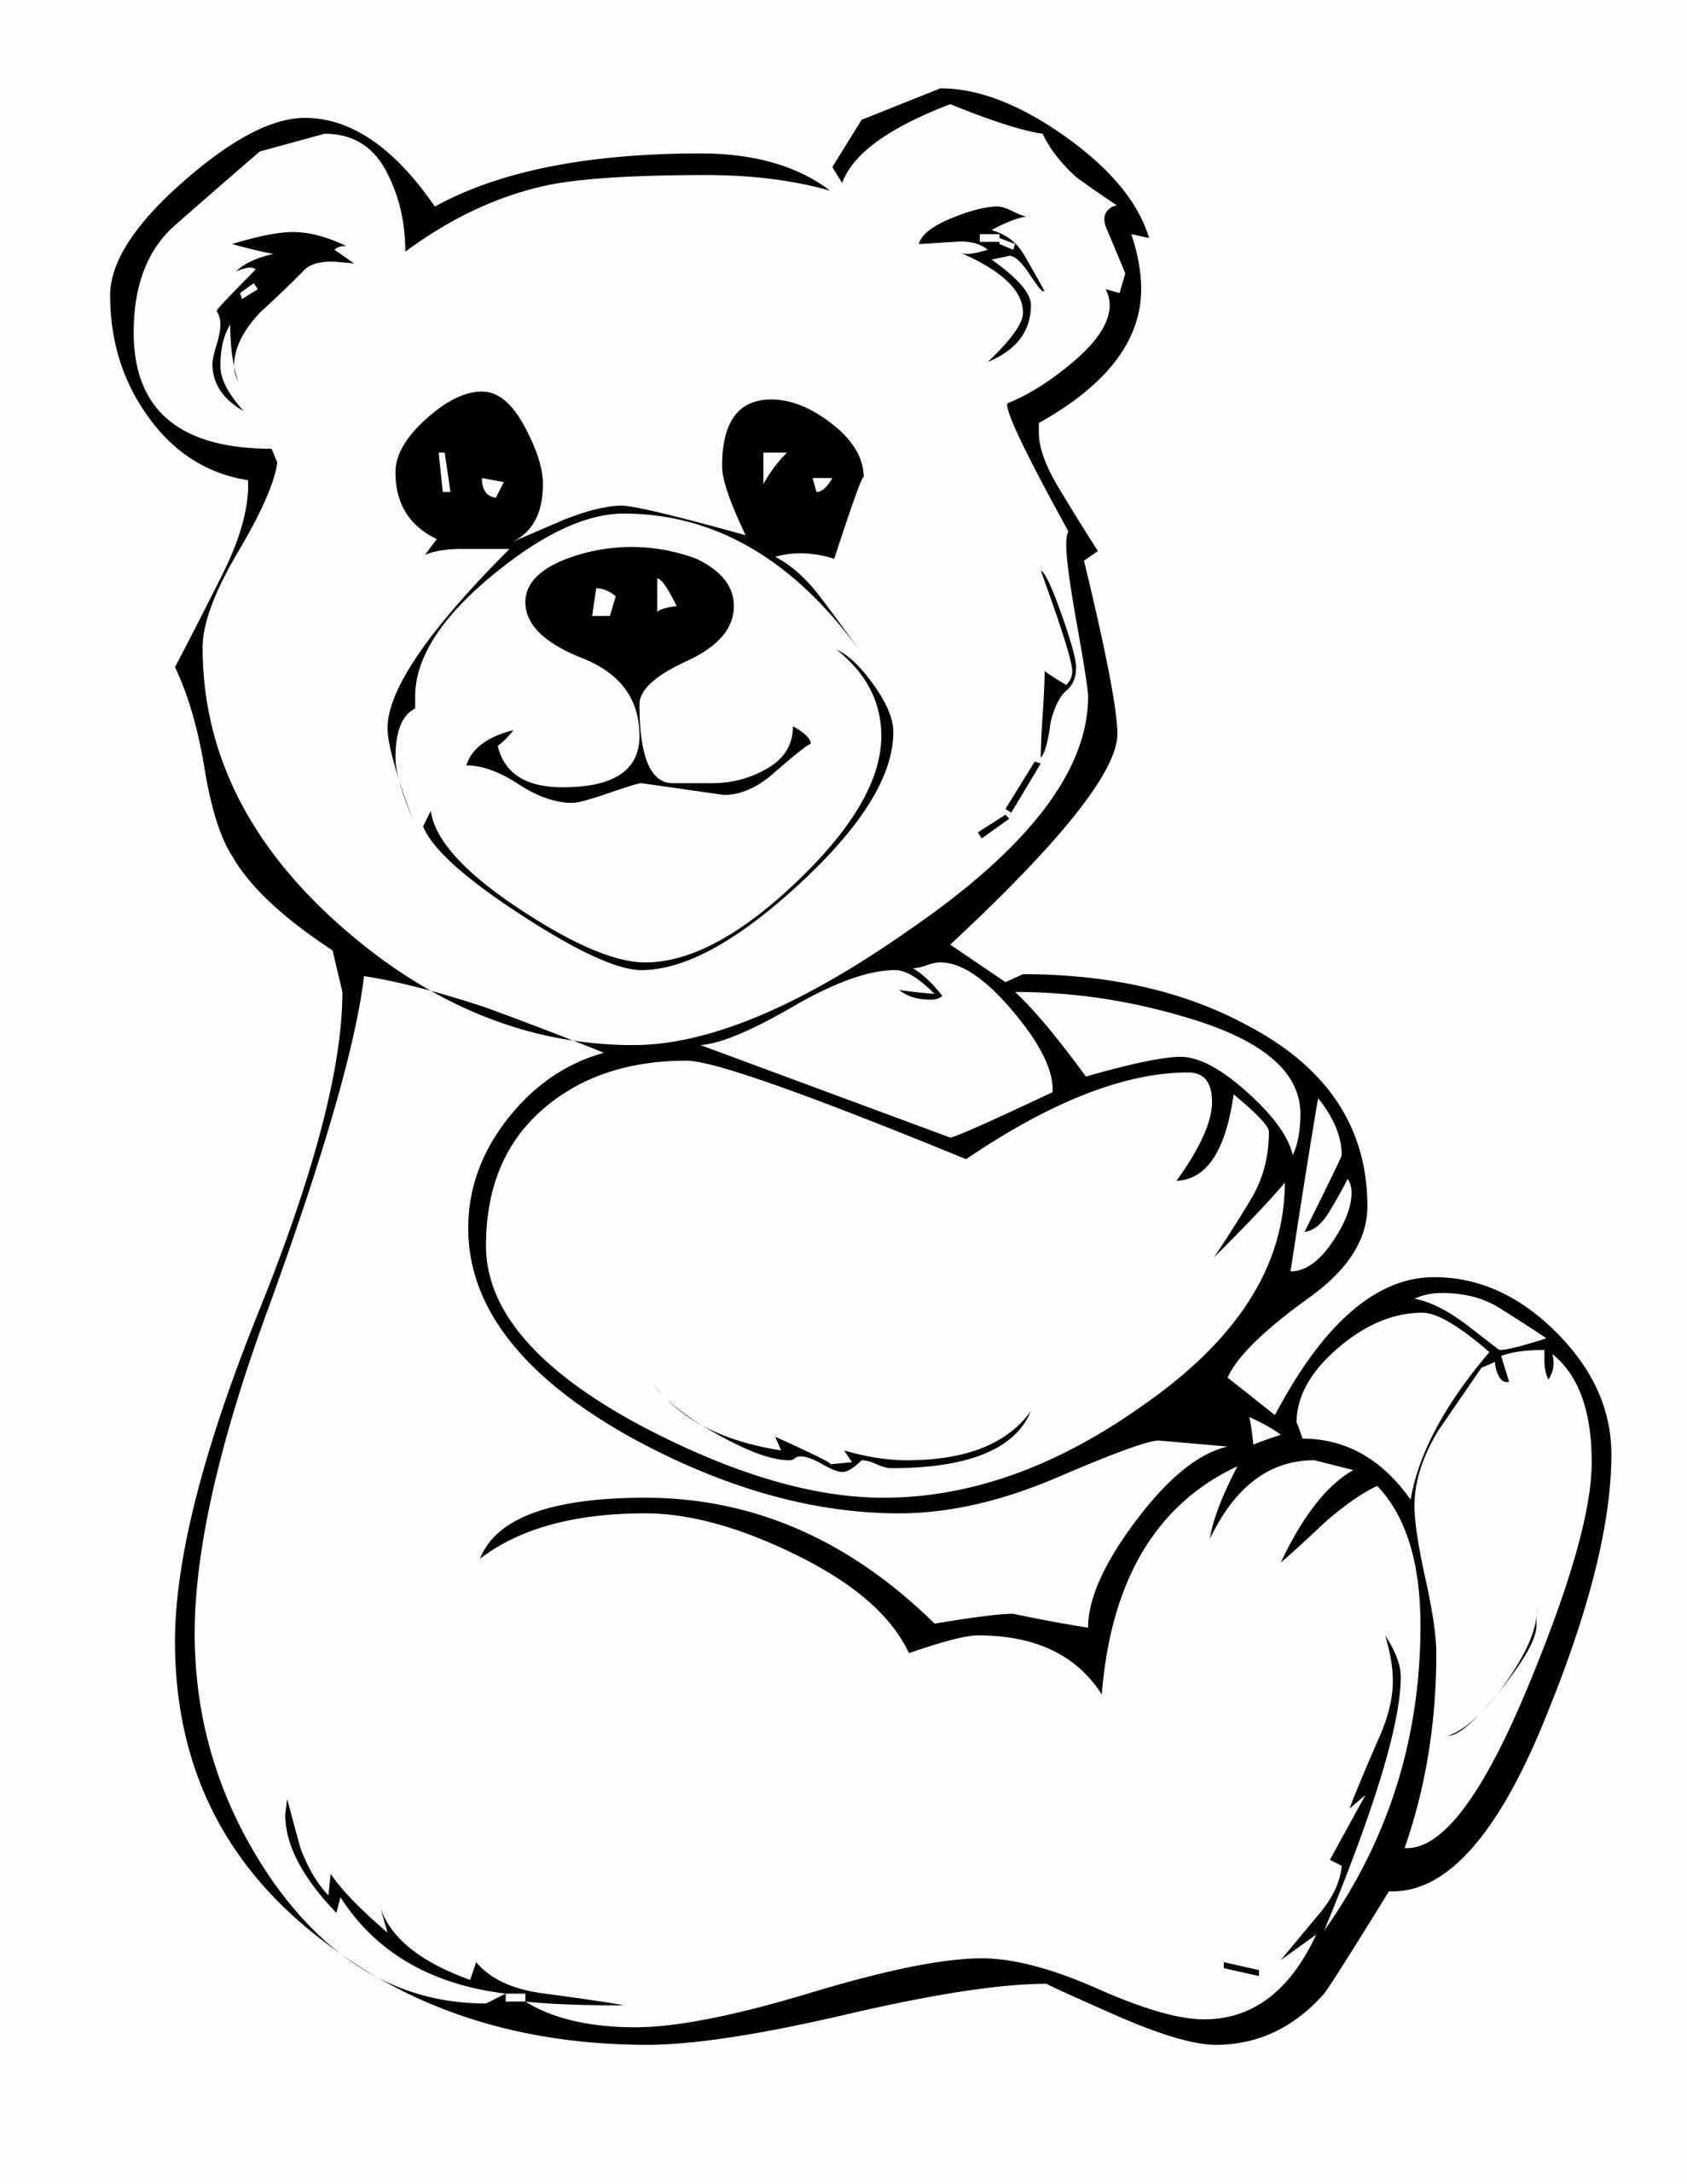 Free Bear Coloring Pages Inspirational Free Bear Coloring Pages In 2020 Teddy Bear Coloring Pages Bear Coloring Pages Polar Bear Coloring Page